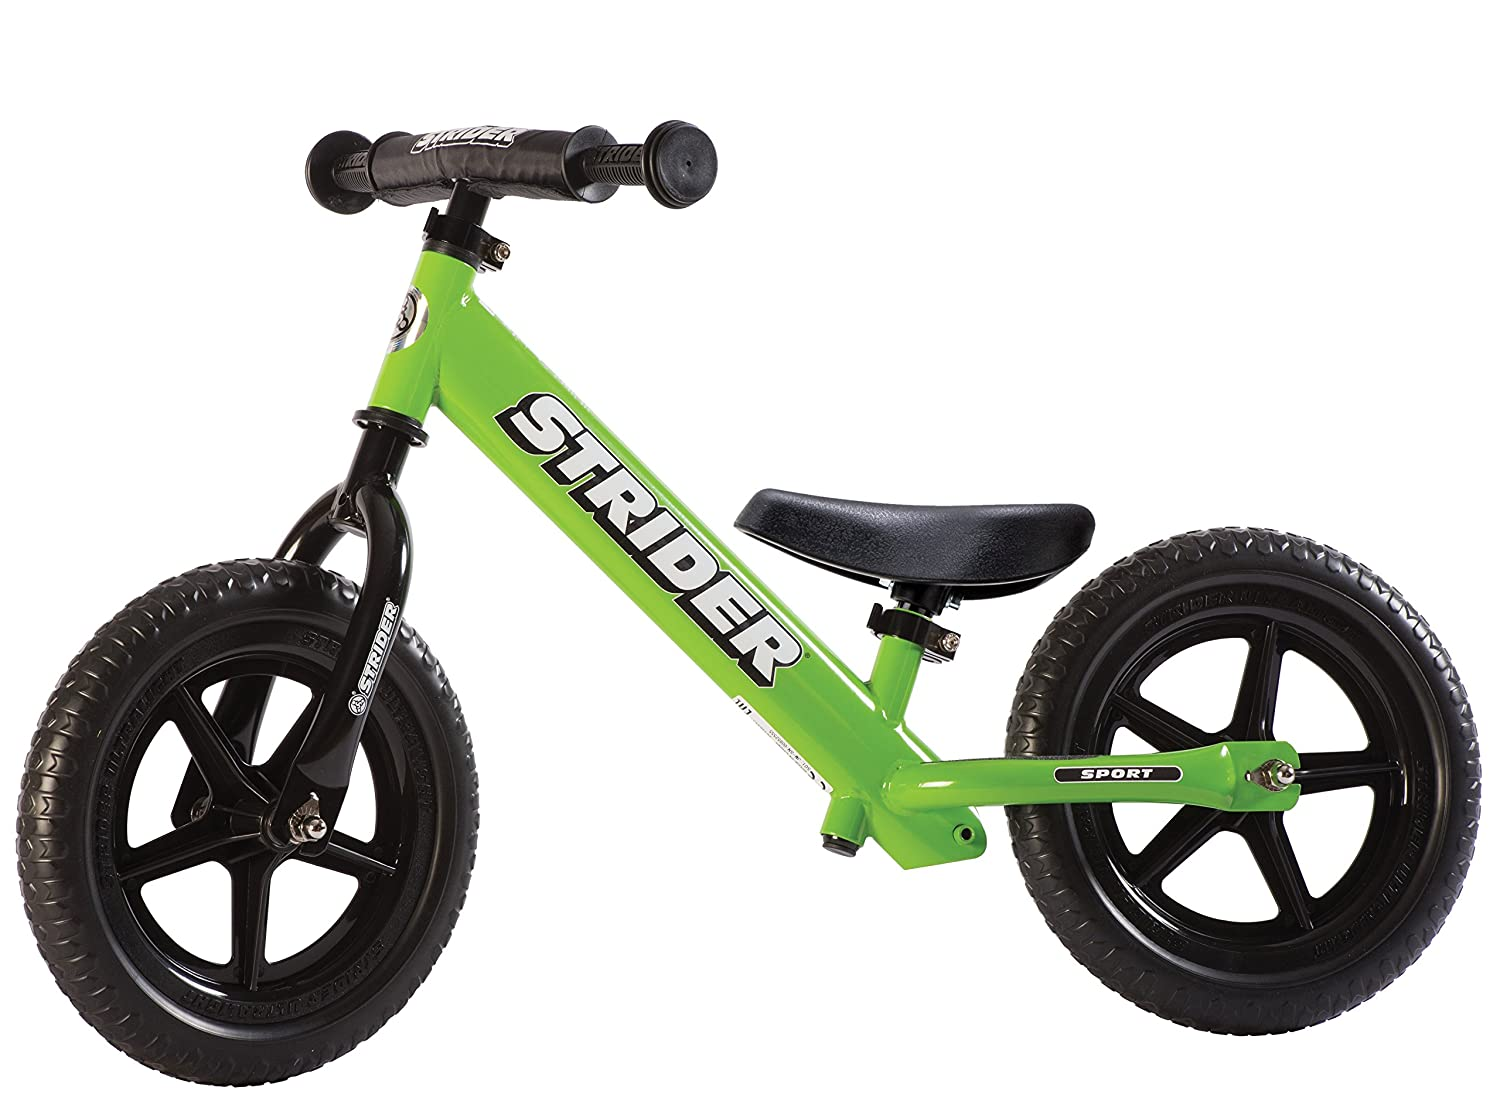 Strider - 12 Sport Balance Bike, Ages 18 Months to 5 Years Black Strider Sports International Inc. ST-S4BK